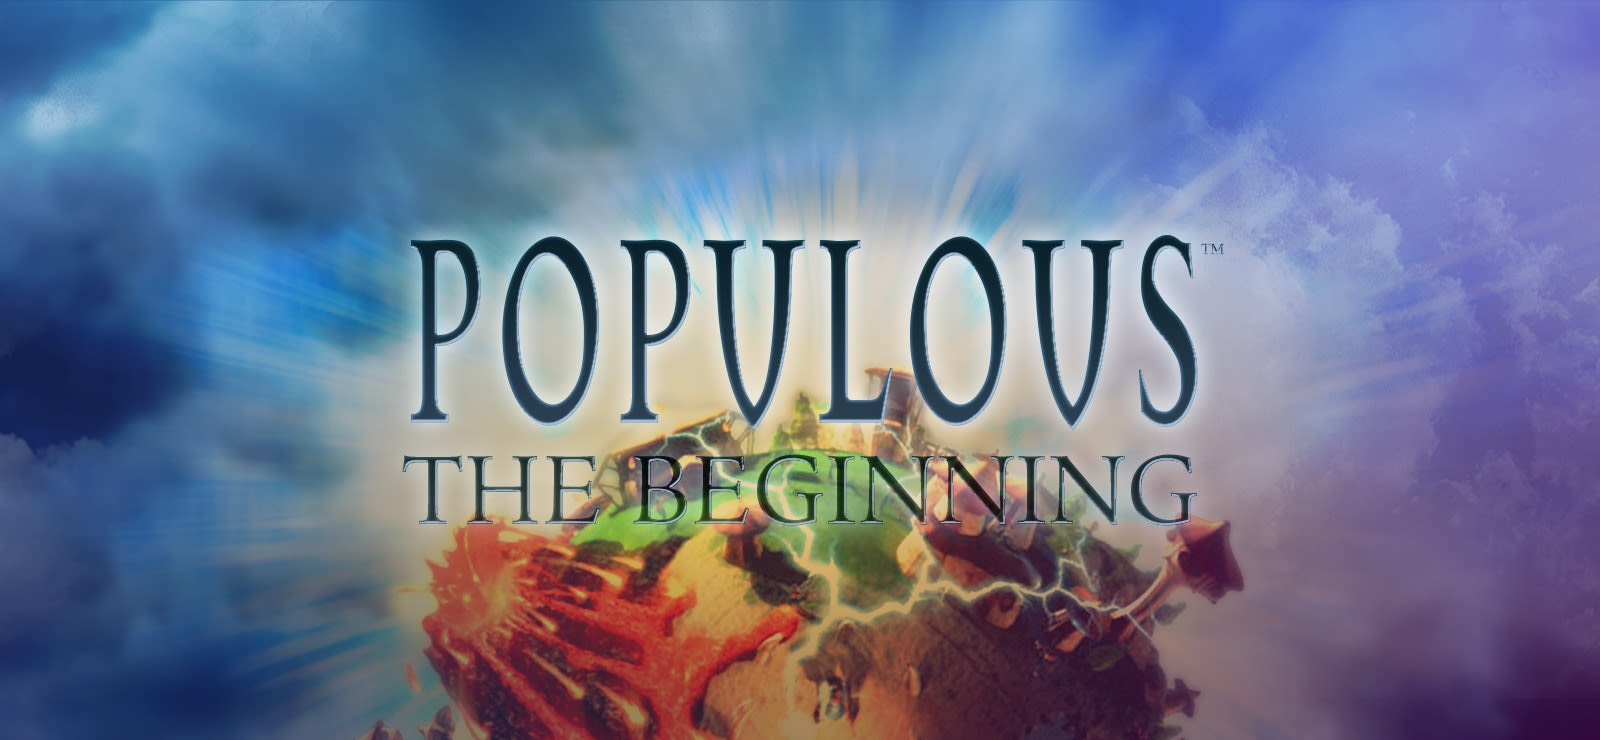 Populous: The Beginning varies-with-device